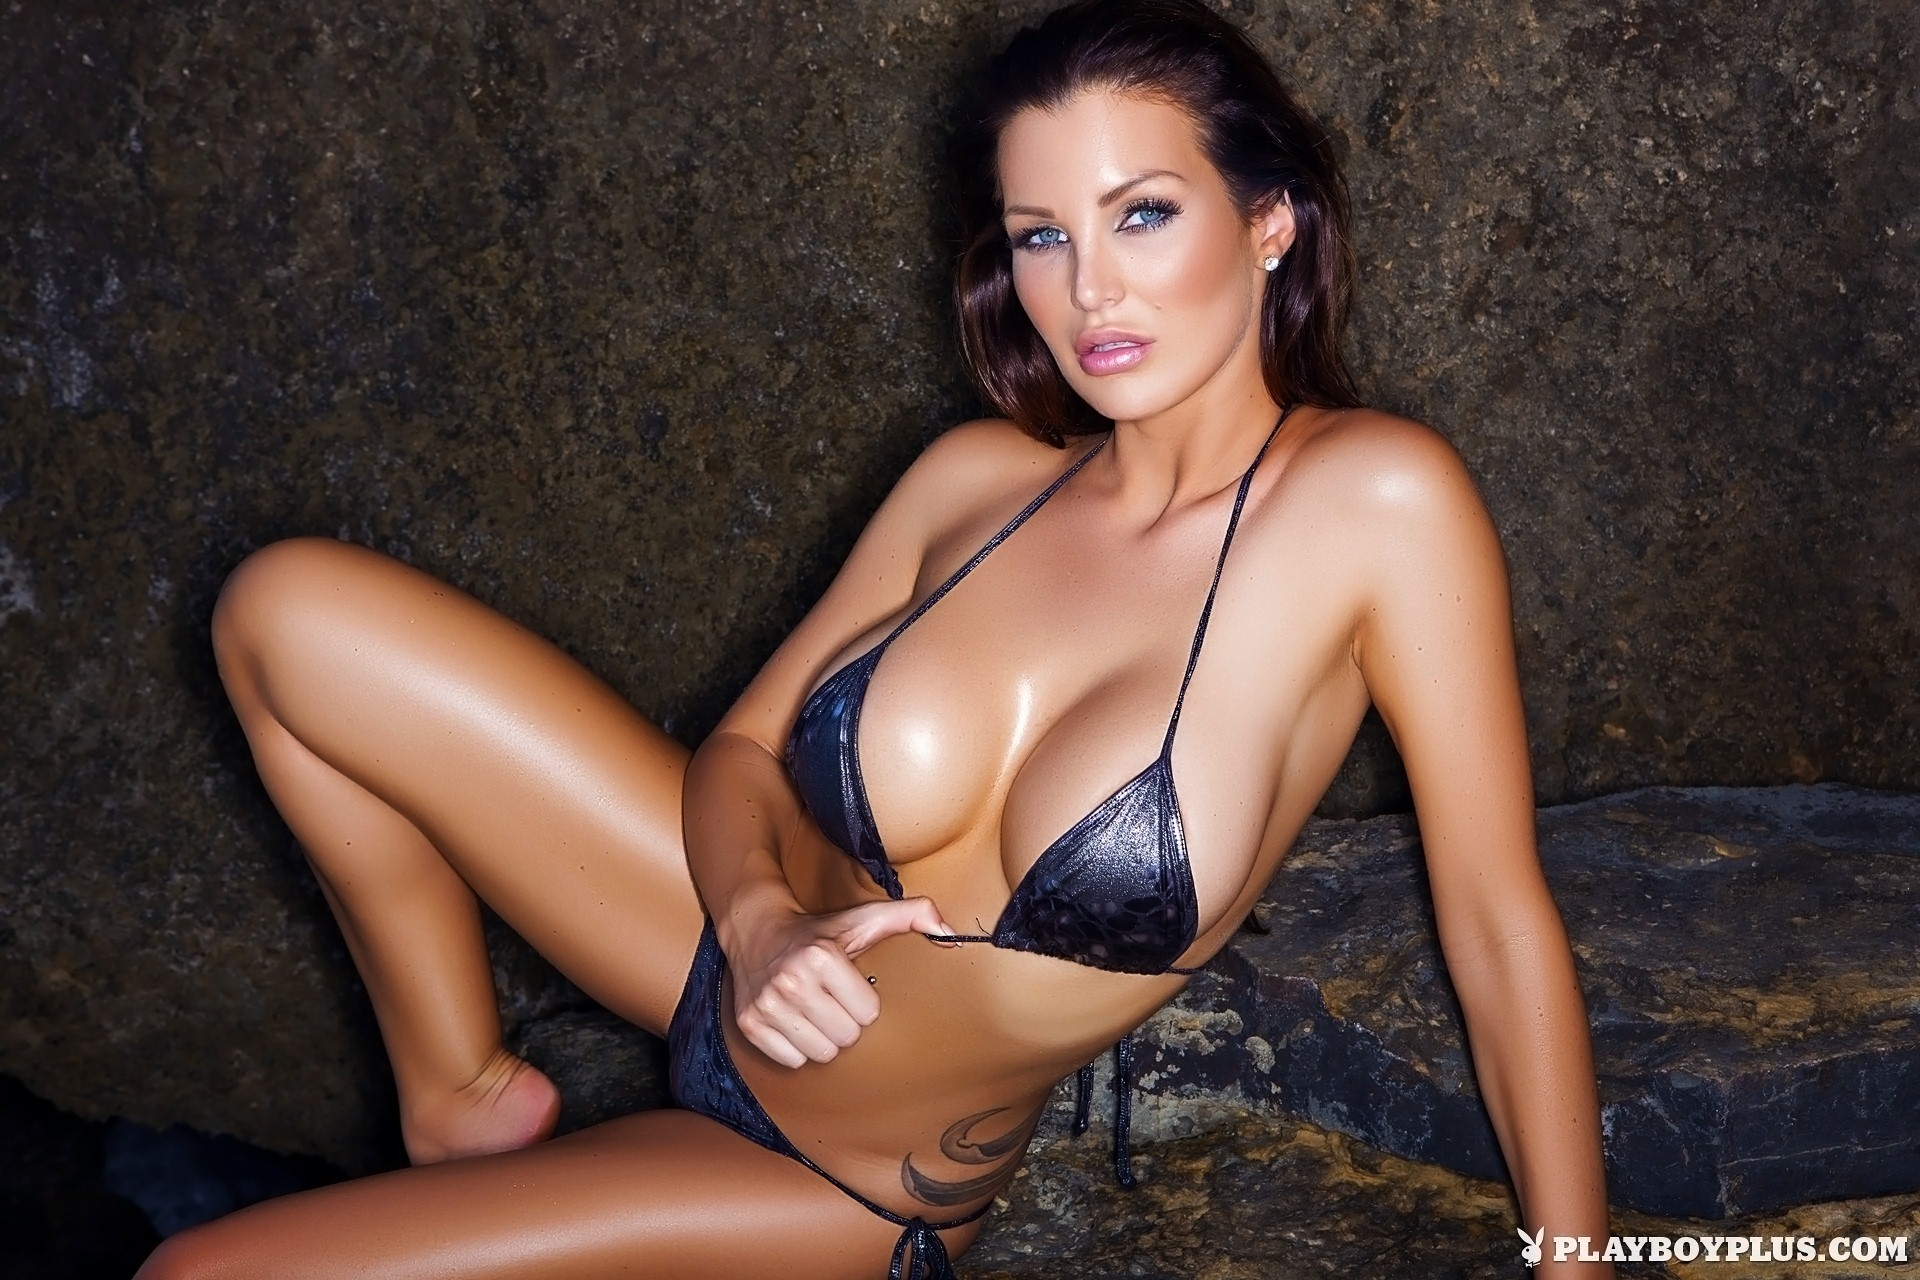 Helen de Muro On the Rocks for Playboy | Daily Girls @ Female Update